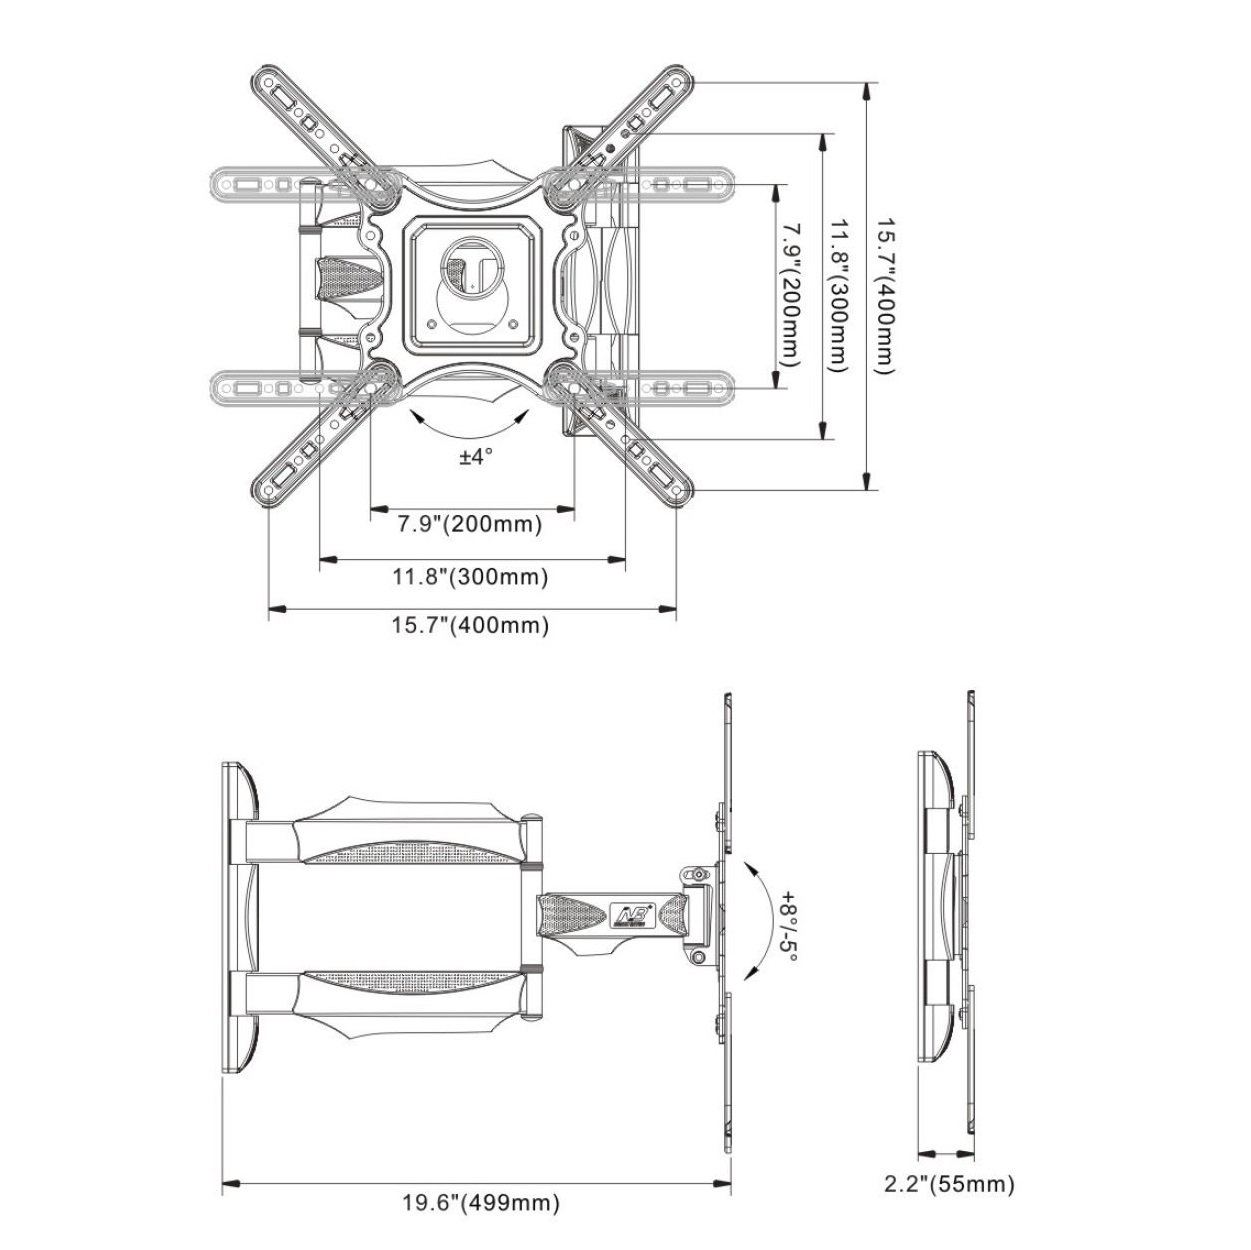 w6 tv wall mount size drawing